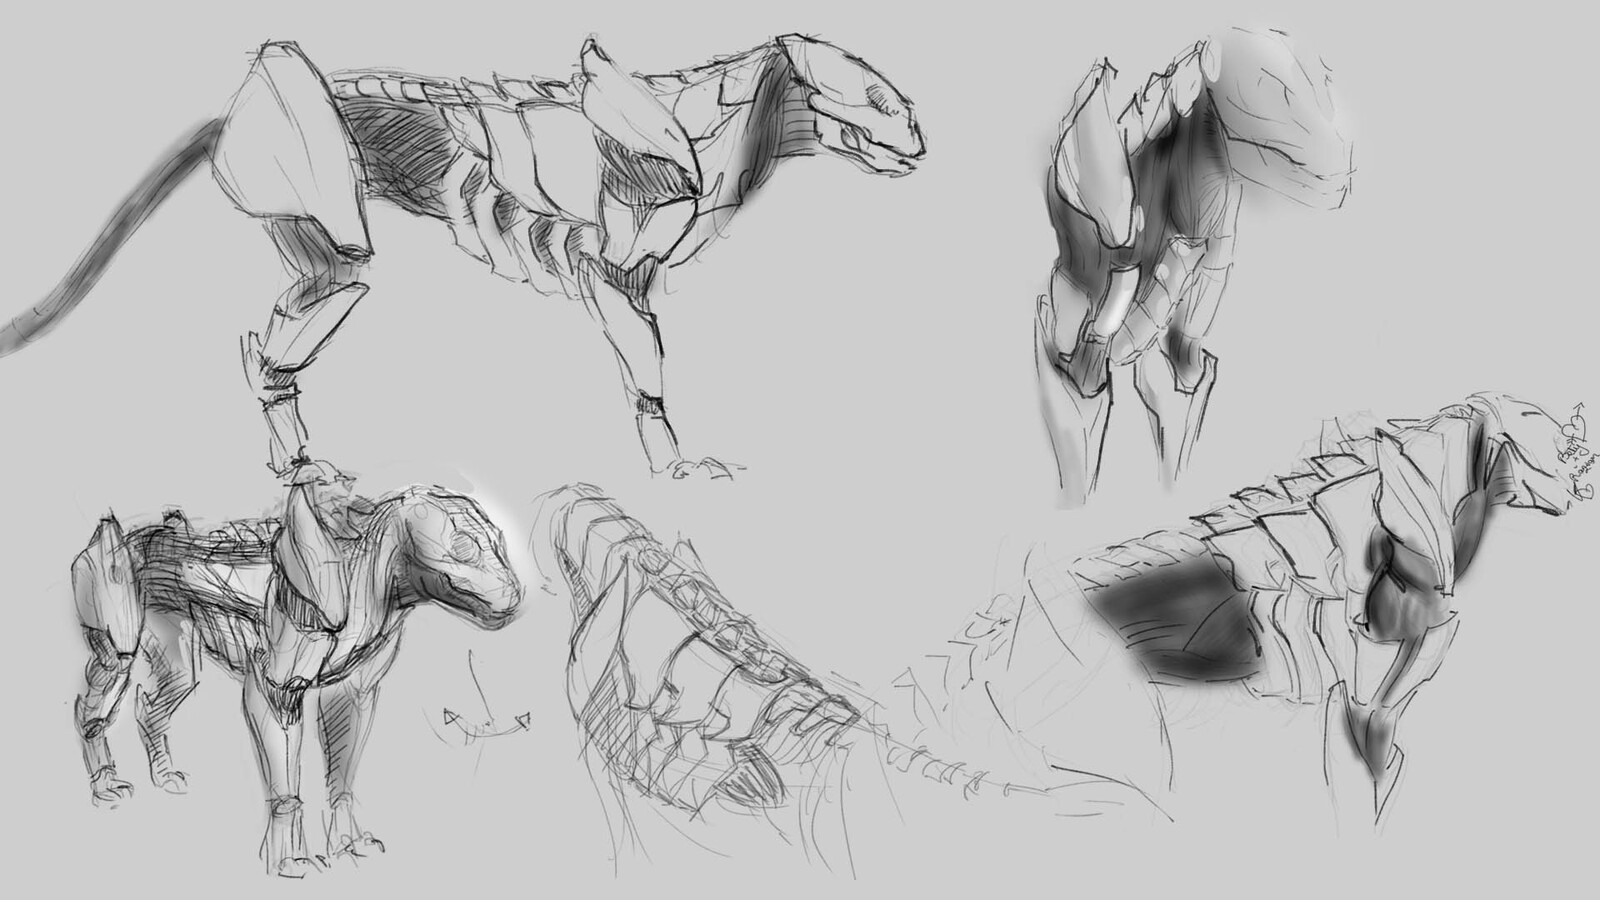 First sketches. Just laying out ideas. Mostly did these to get in the habit of sketching more.